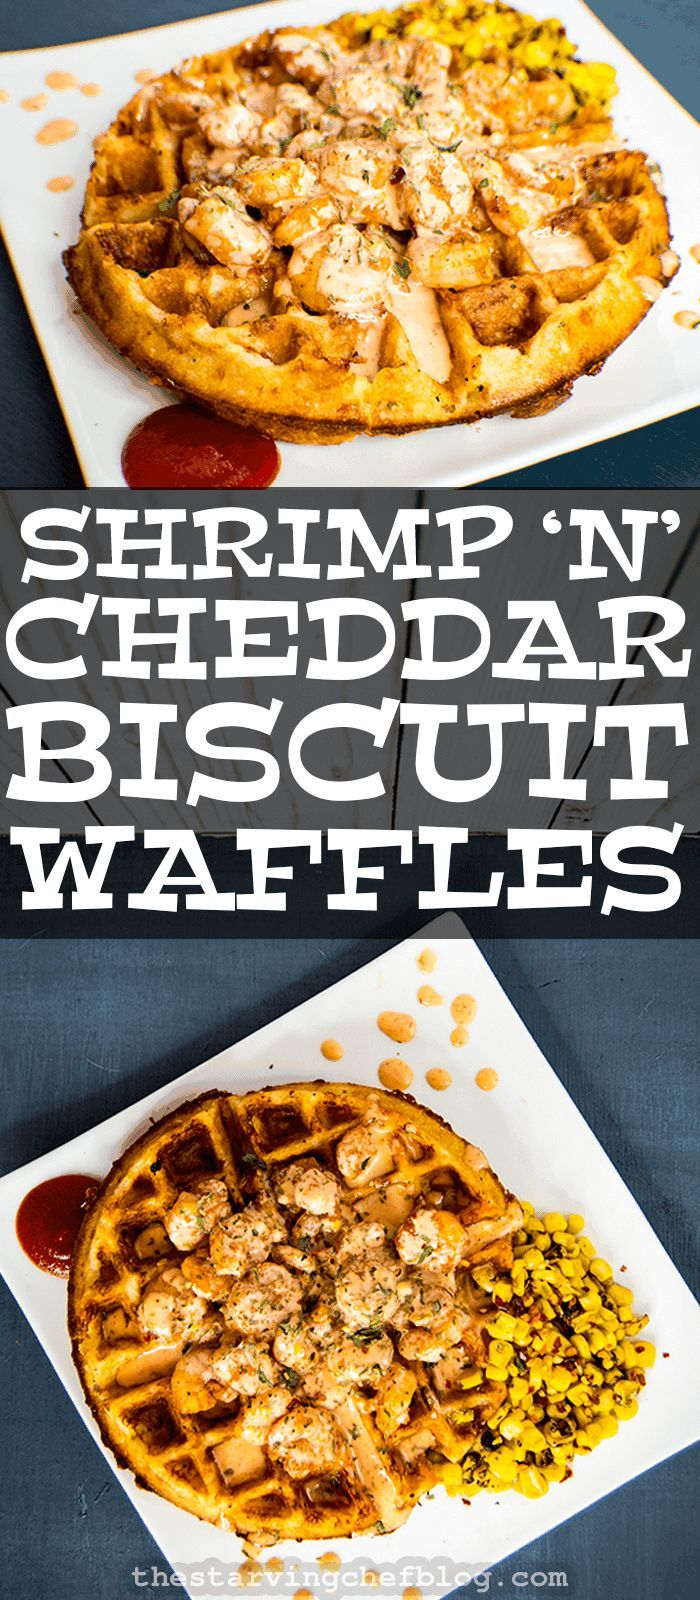 The Starving Chef | Shrimp 'n' Waffles - Old Bay Cheddar Biscuit mix is transformed into delicious waffles.